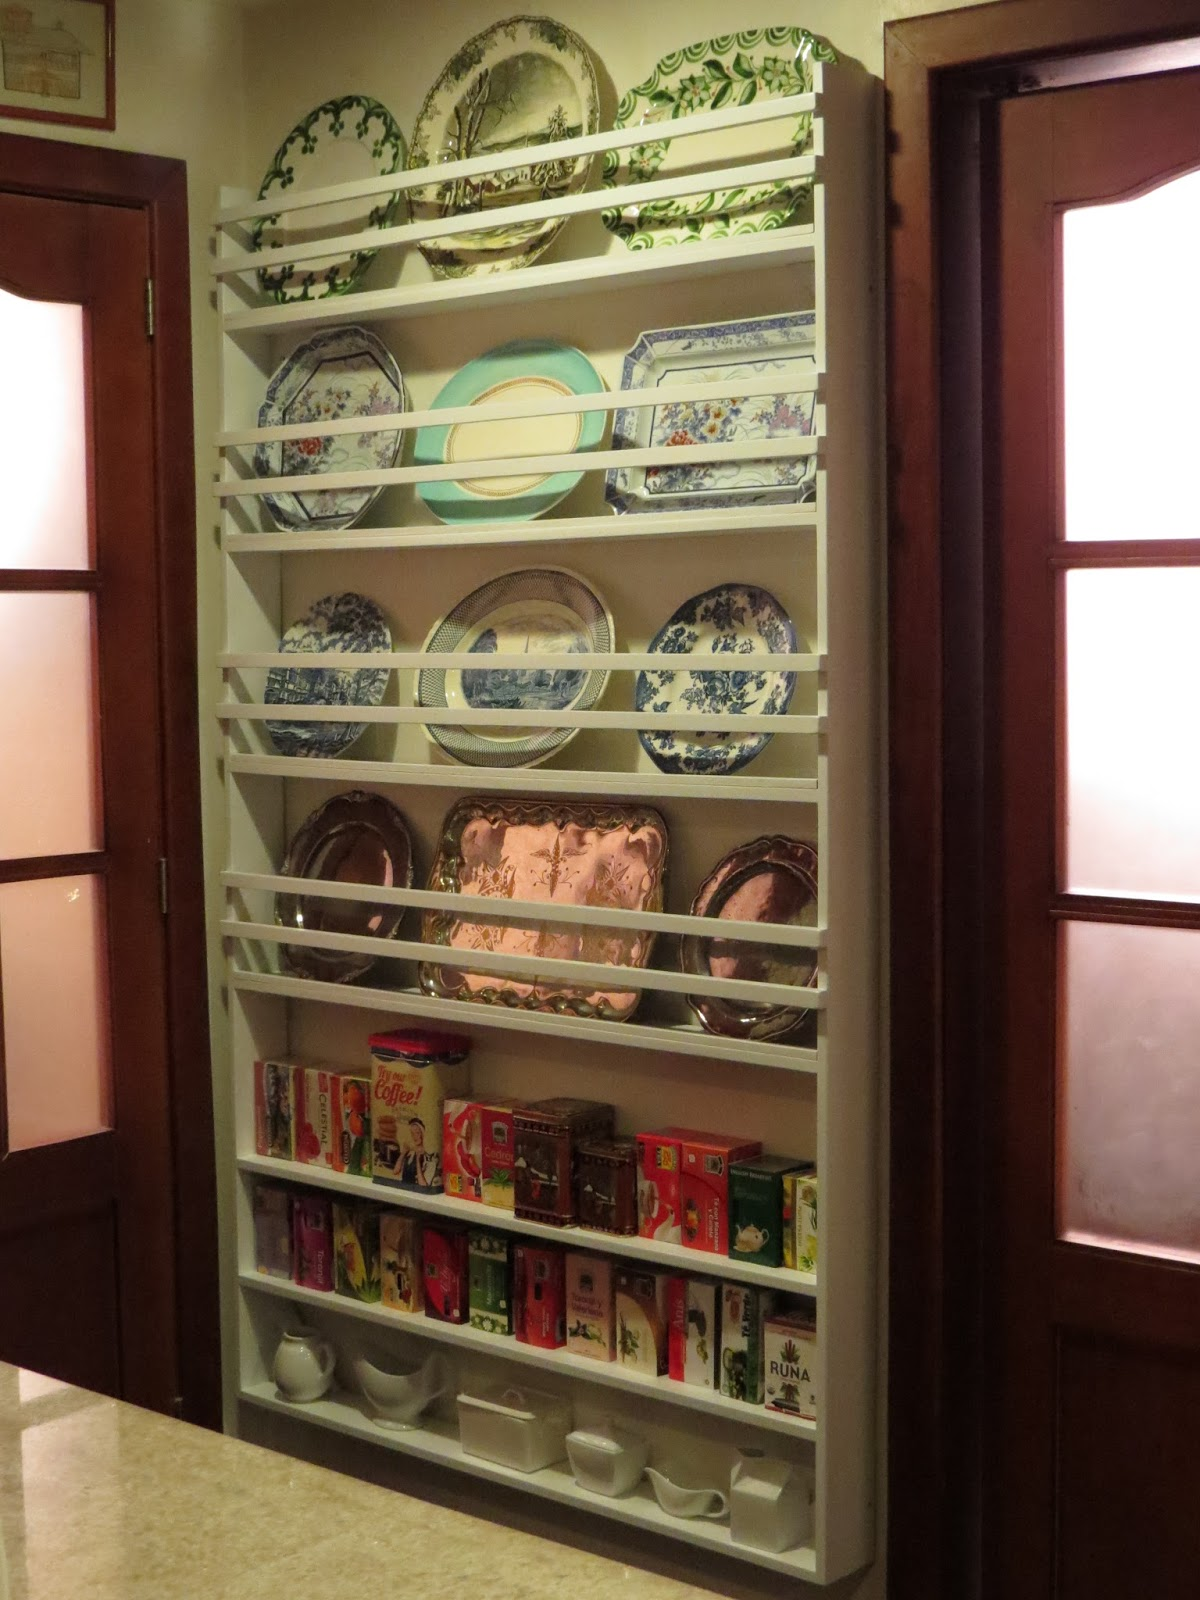 Fabby 39 s living my new wall plate rack for Kitchen display wall